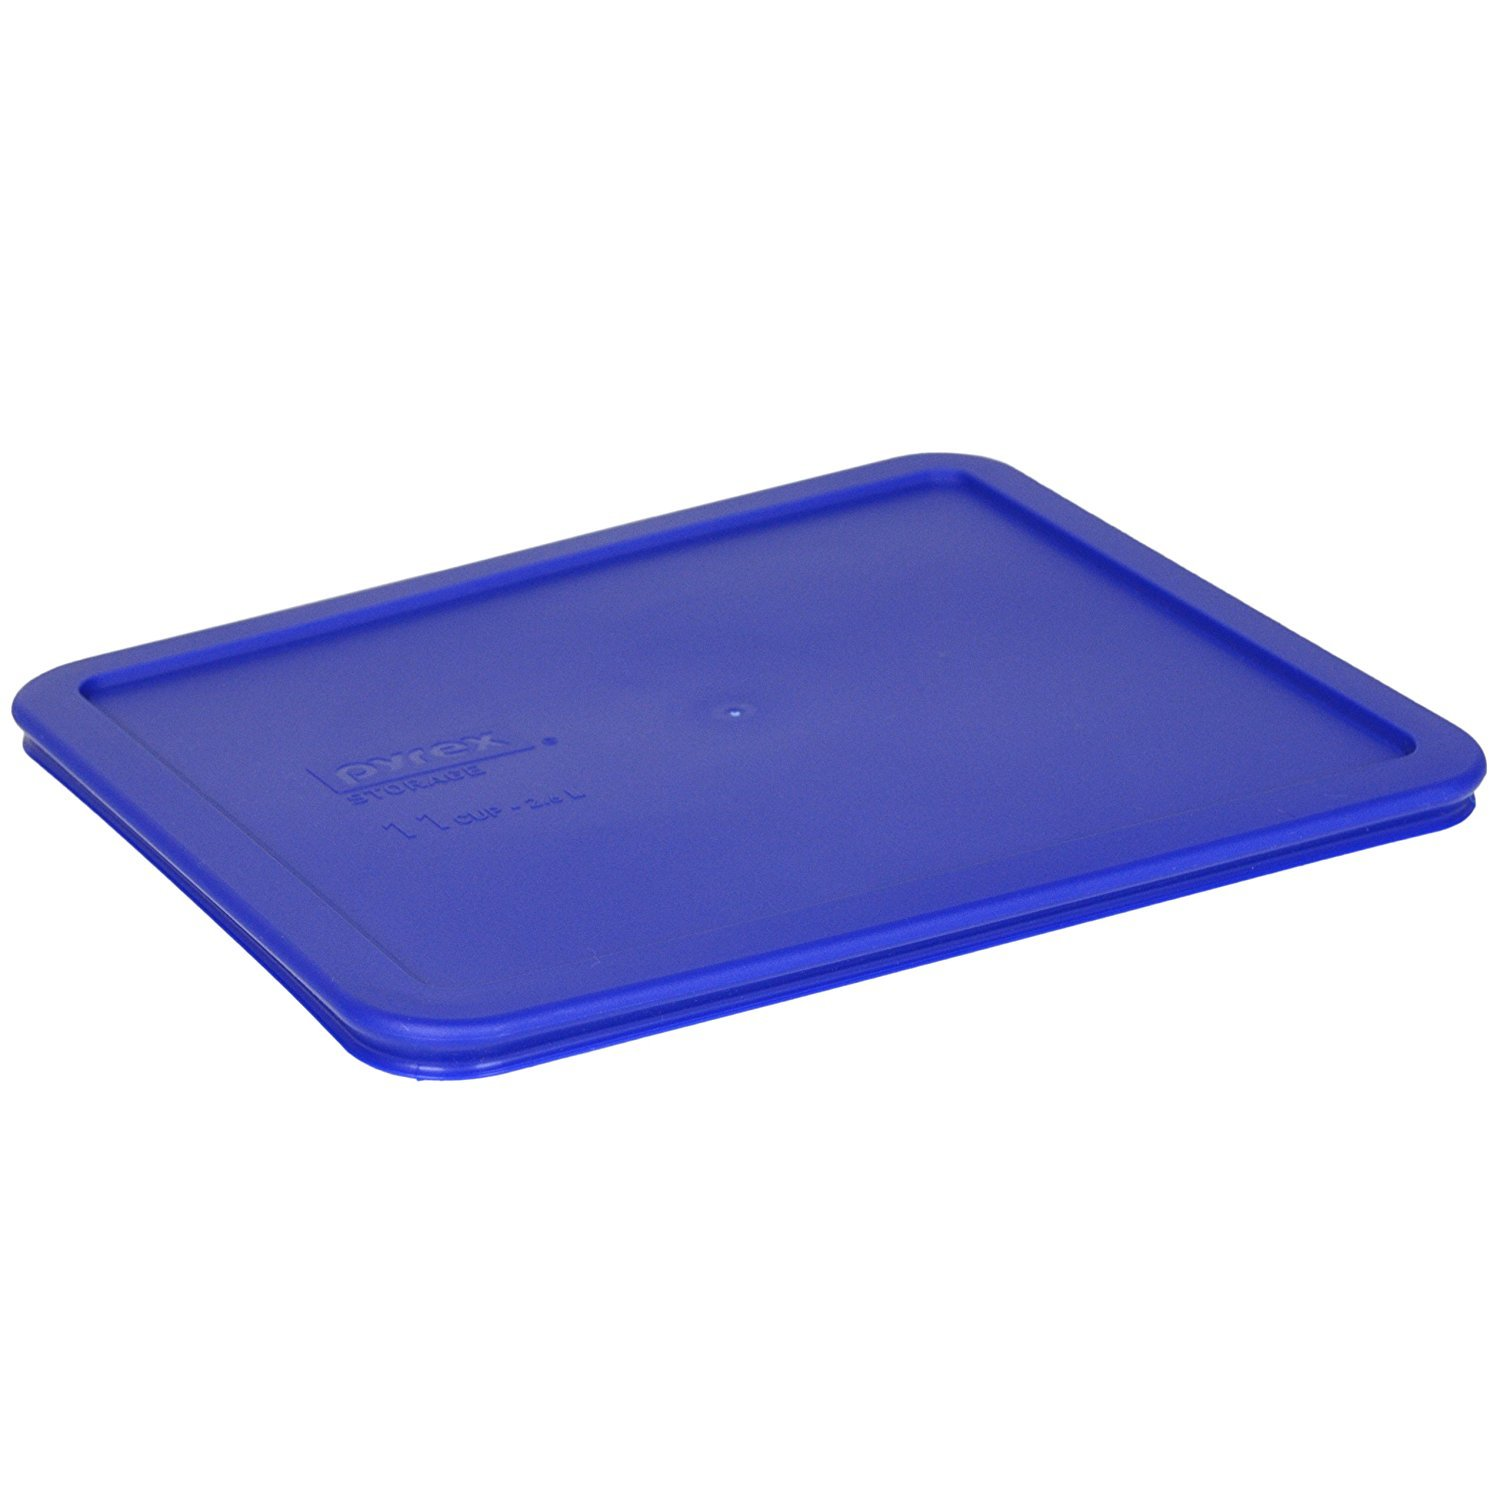 Amazon.com: PYREX 7212-PC Light Blue 11-cup Rectangular Plastic Cover for Glass Dish: Kitchen & Dining